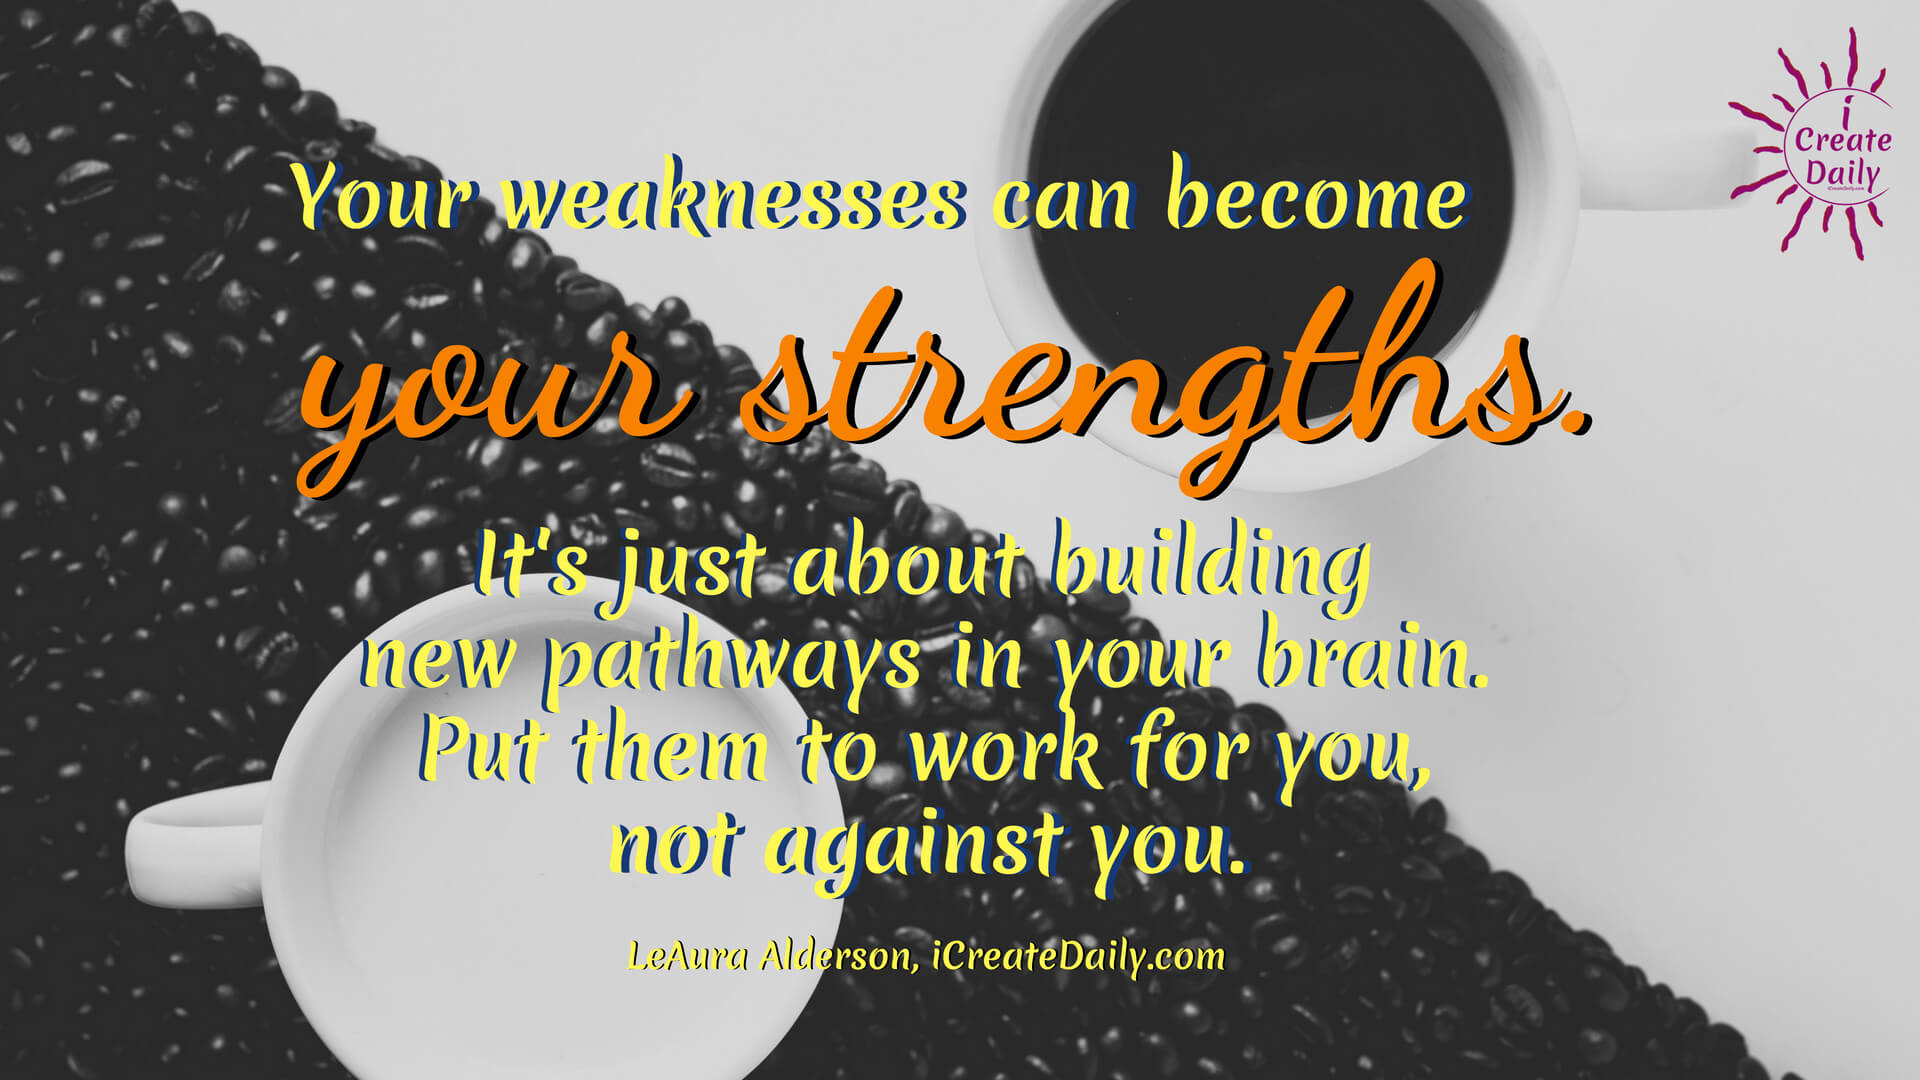 STRUGGLE QUOTE - From Struggle to Strength.Struggles are just brambles in the path; hack them away and forge ahead. #YourStrengths #iCreateDaily #PersonalDevelopment #FocusOnYourStrengths